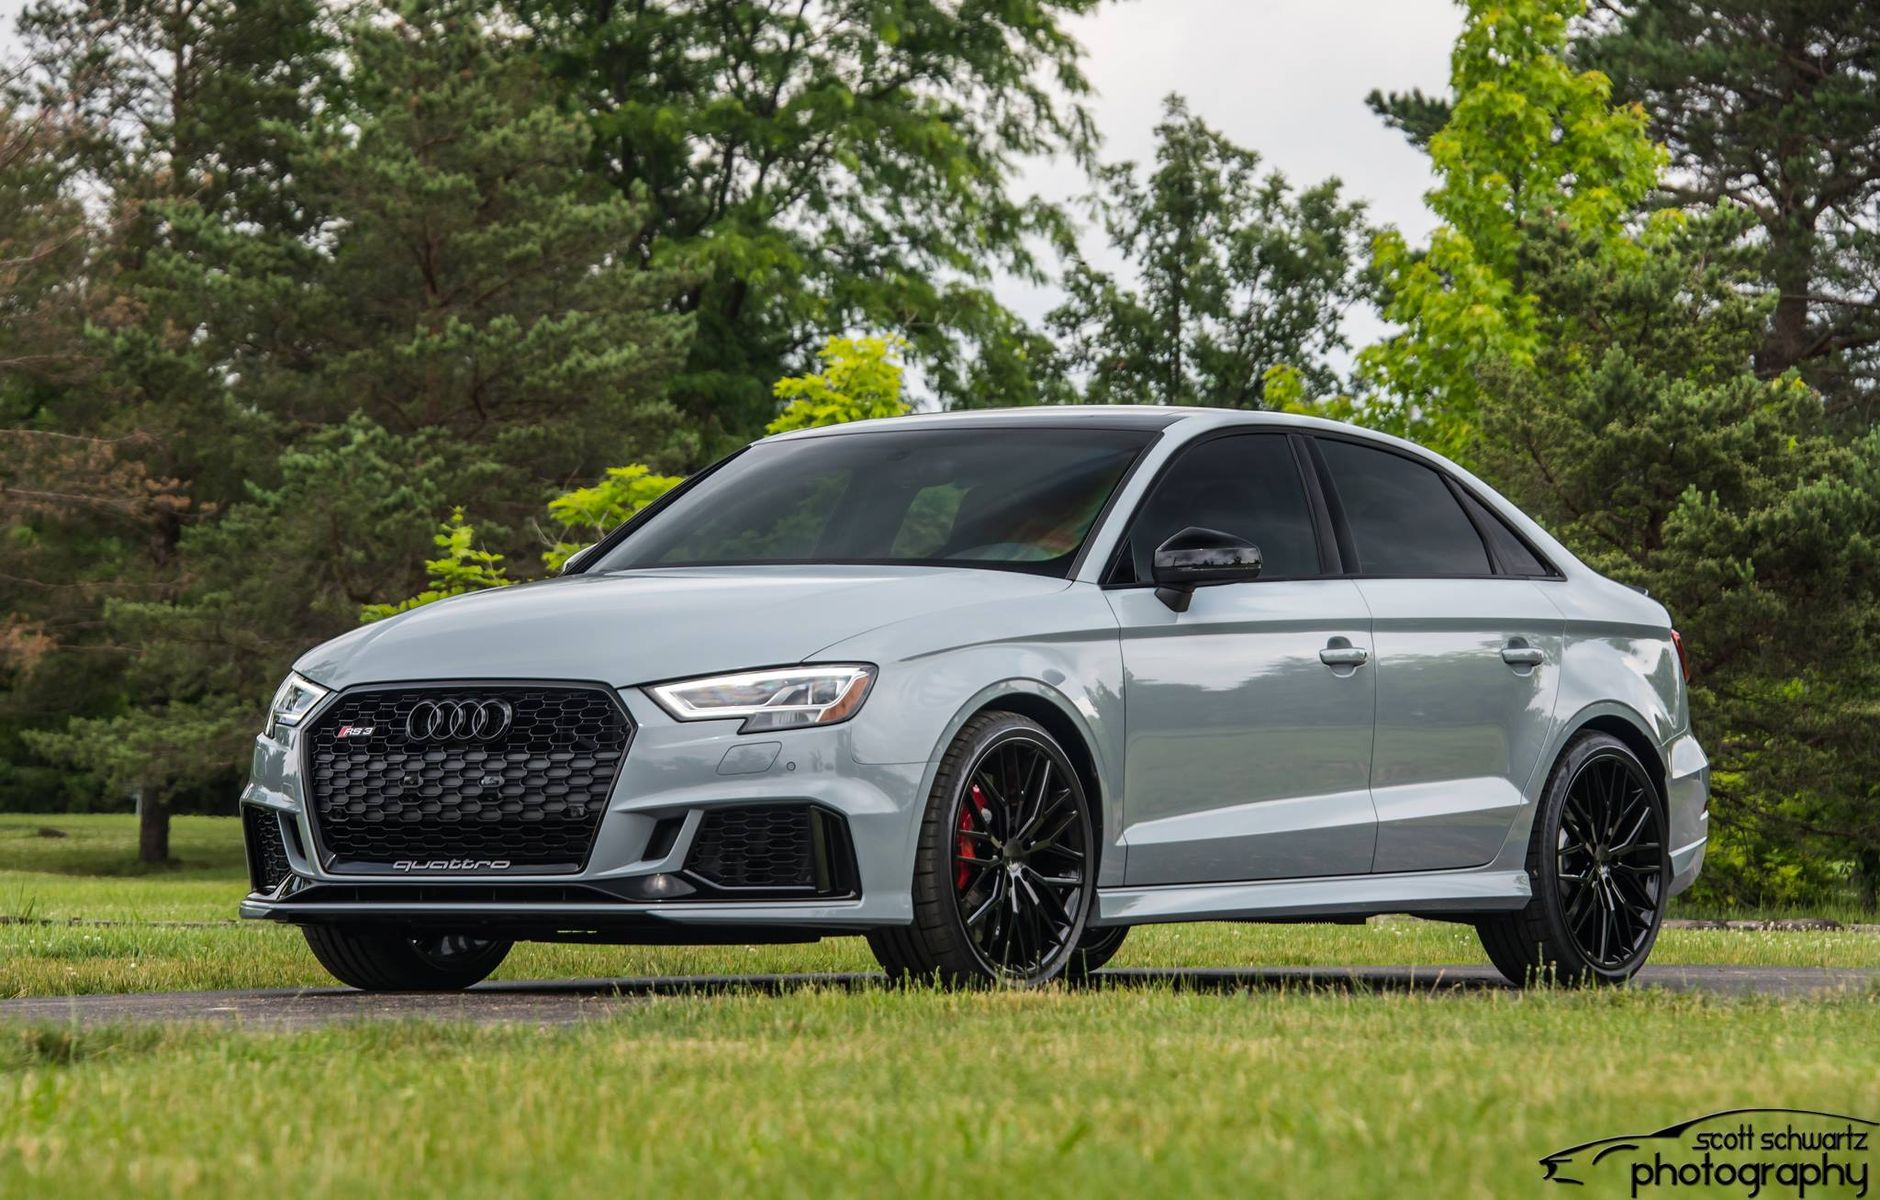 2018 Audi RS 3 | Gary Smith's Audi RS3 on Forgeline One Piece Forged Monoblock ZH1 Wheels